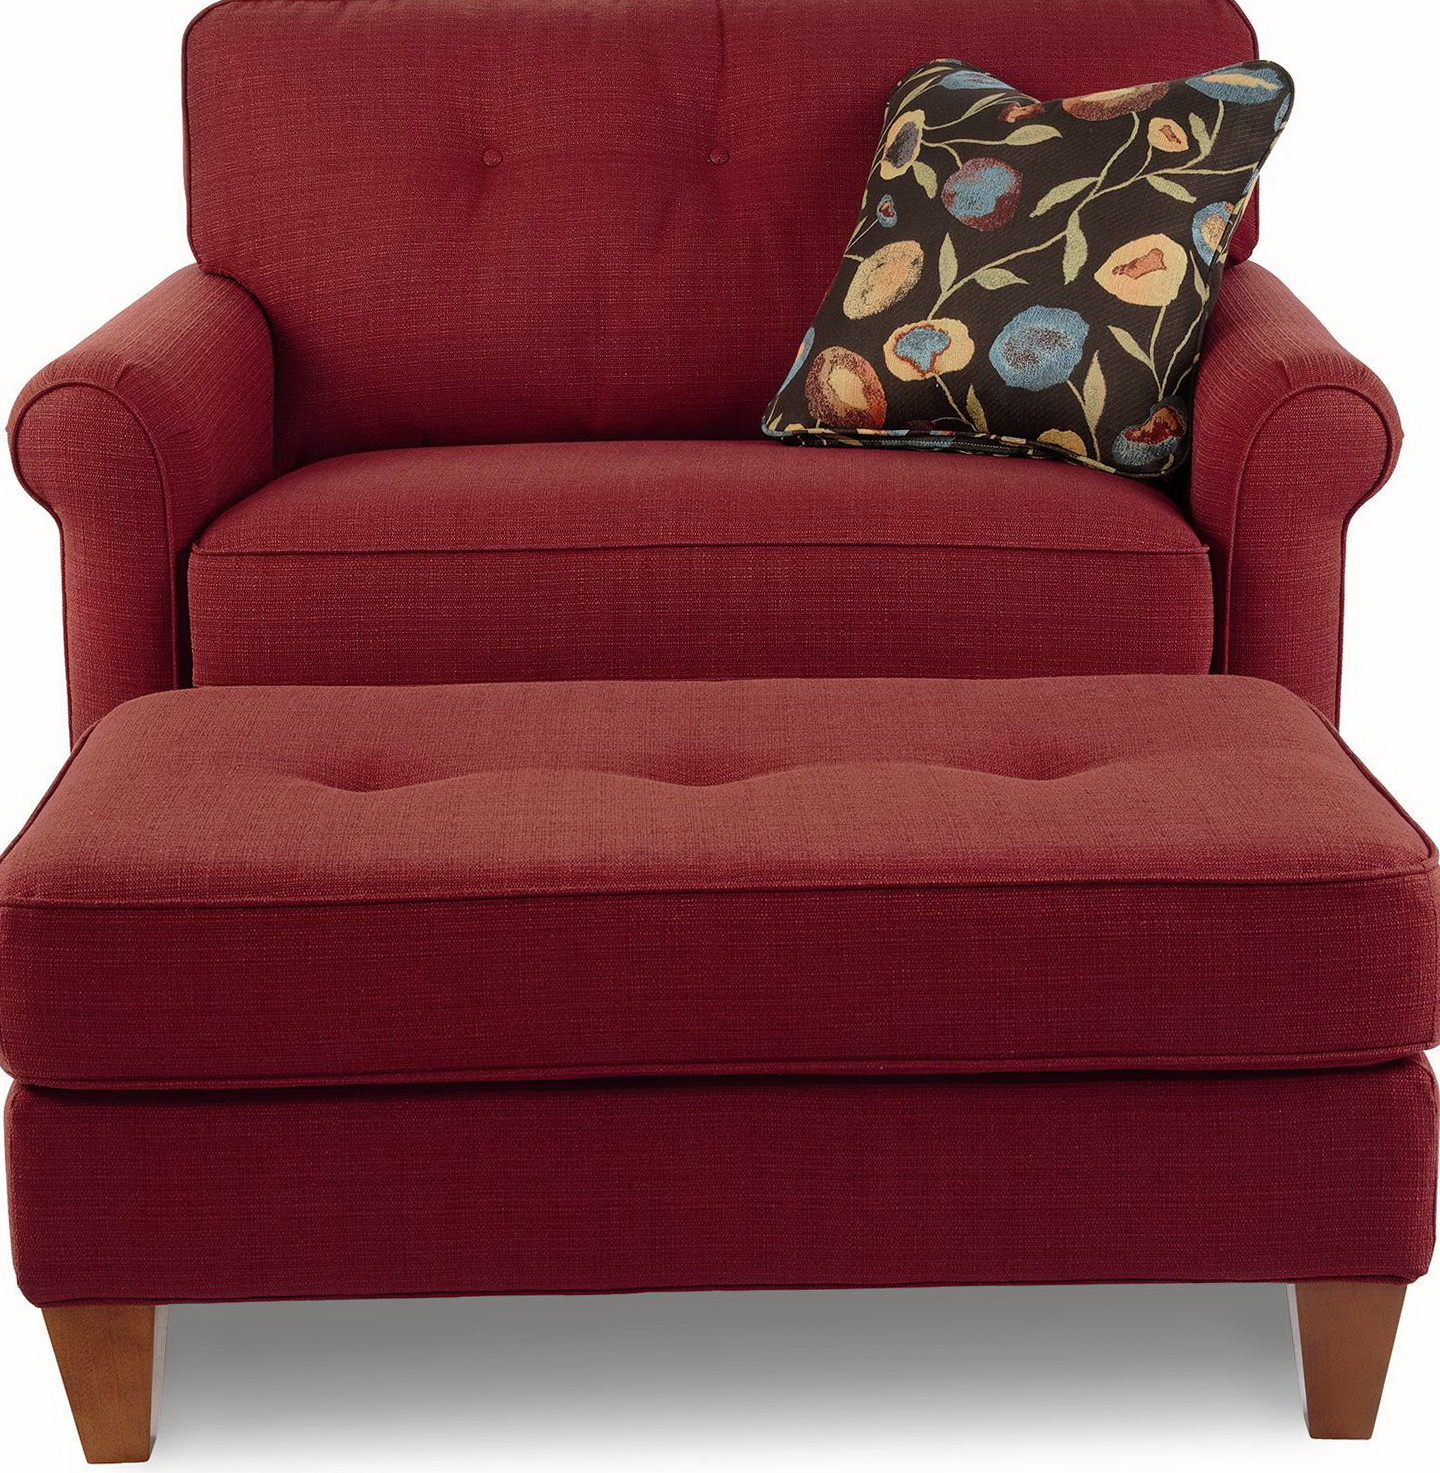 Oversized Chair And Ottoman Sets Oversized Chair And Ottoman Sets Home Design Ideas